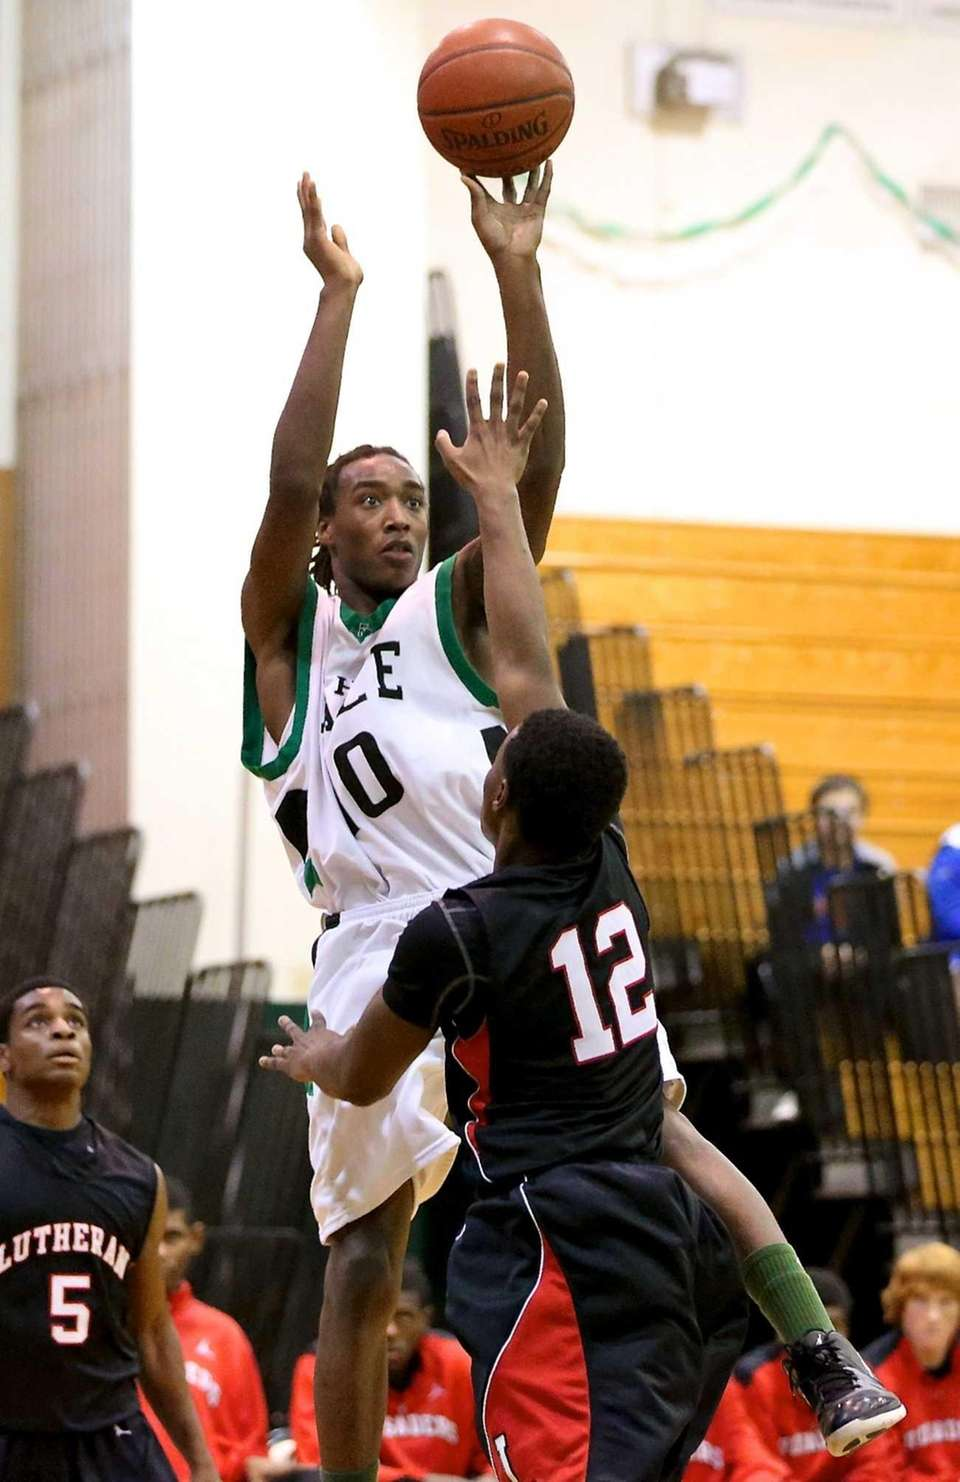 Farmingdale's Curtis Jenkins puts a shot up as